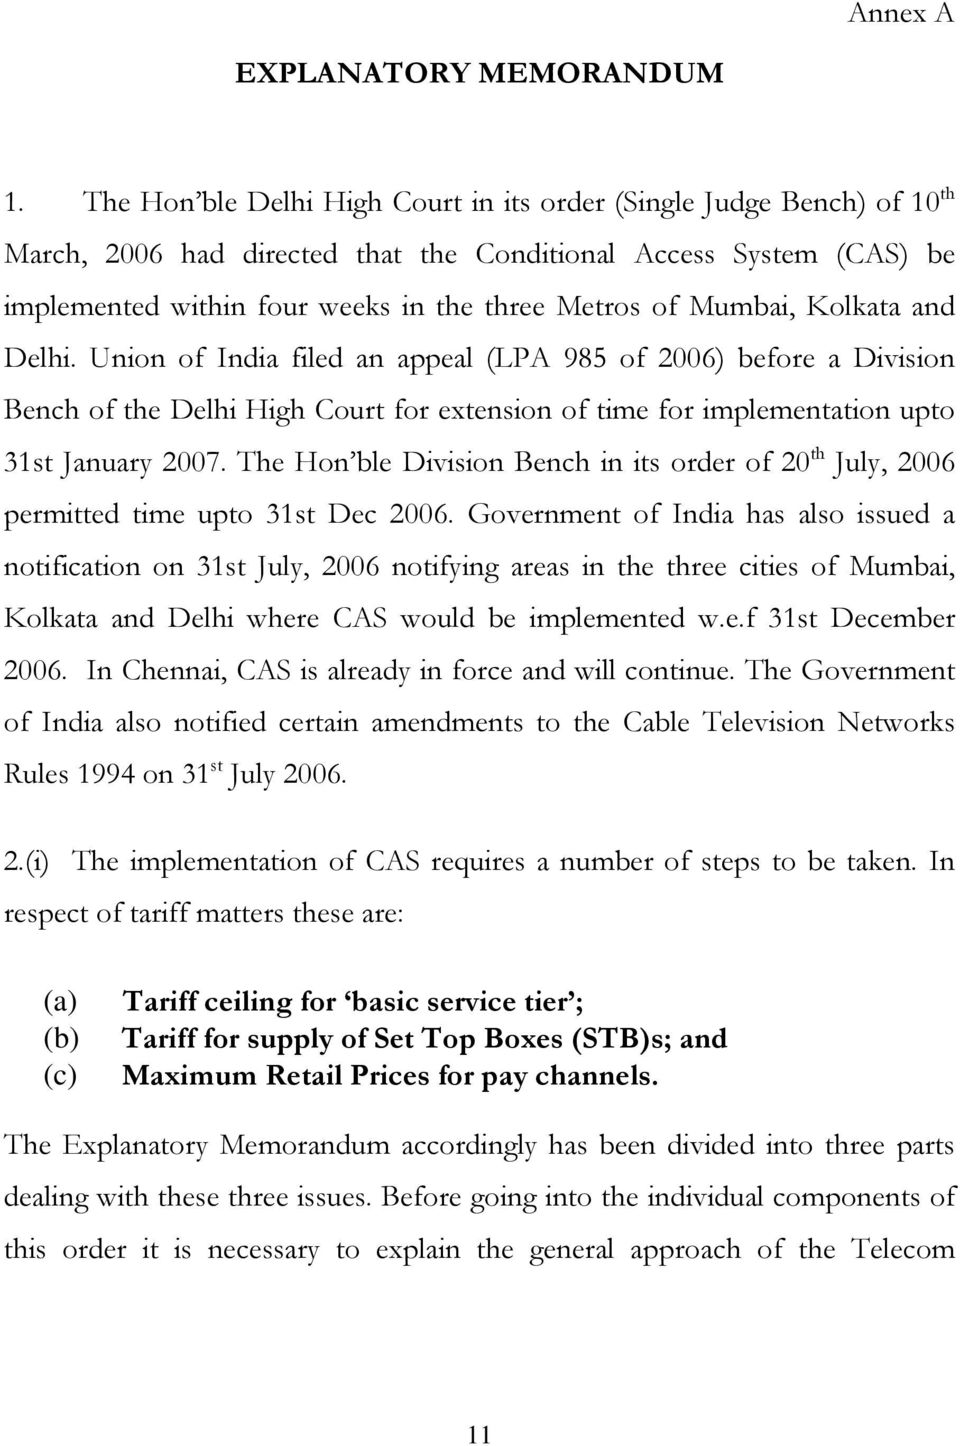 Mumbai, Kolkata and Delhi. Union of India filed an appeal (LPA 985 of 2006) before a Division Bench of the Delhi High Court for extension of time for implementation upto 31st January 2007.